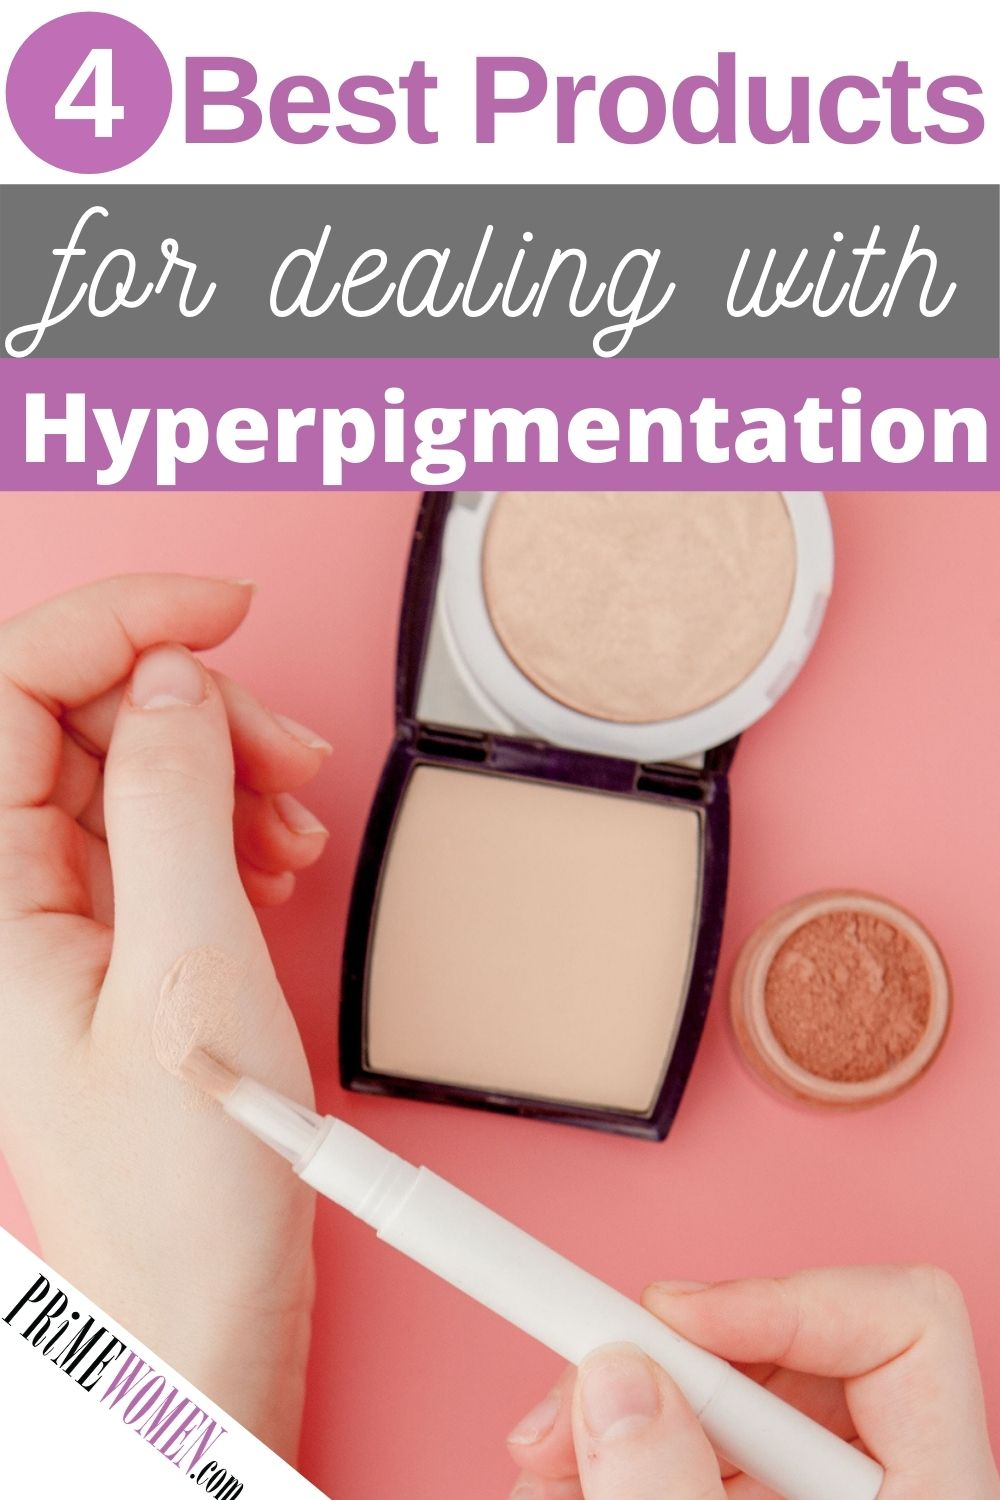 4 best products for deal with Hyperpigmentation